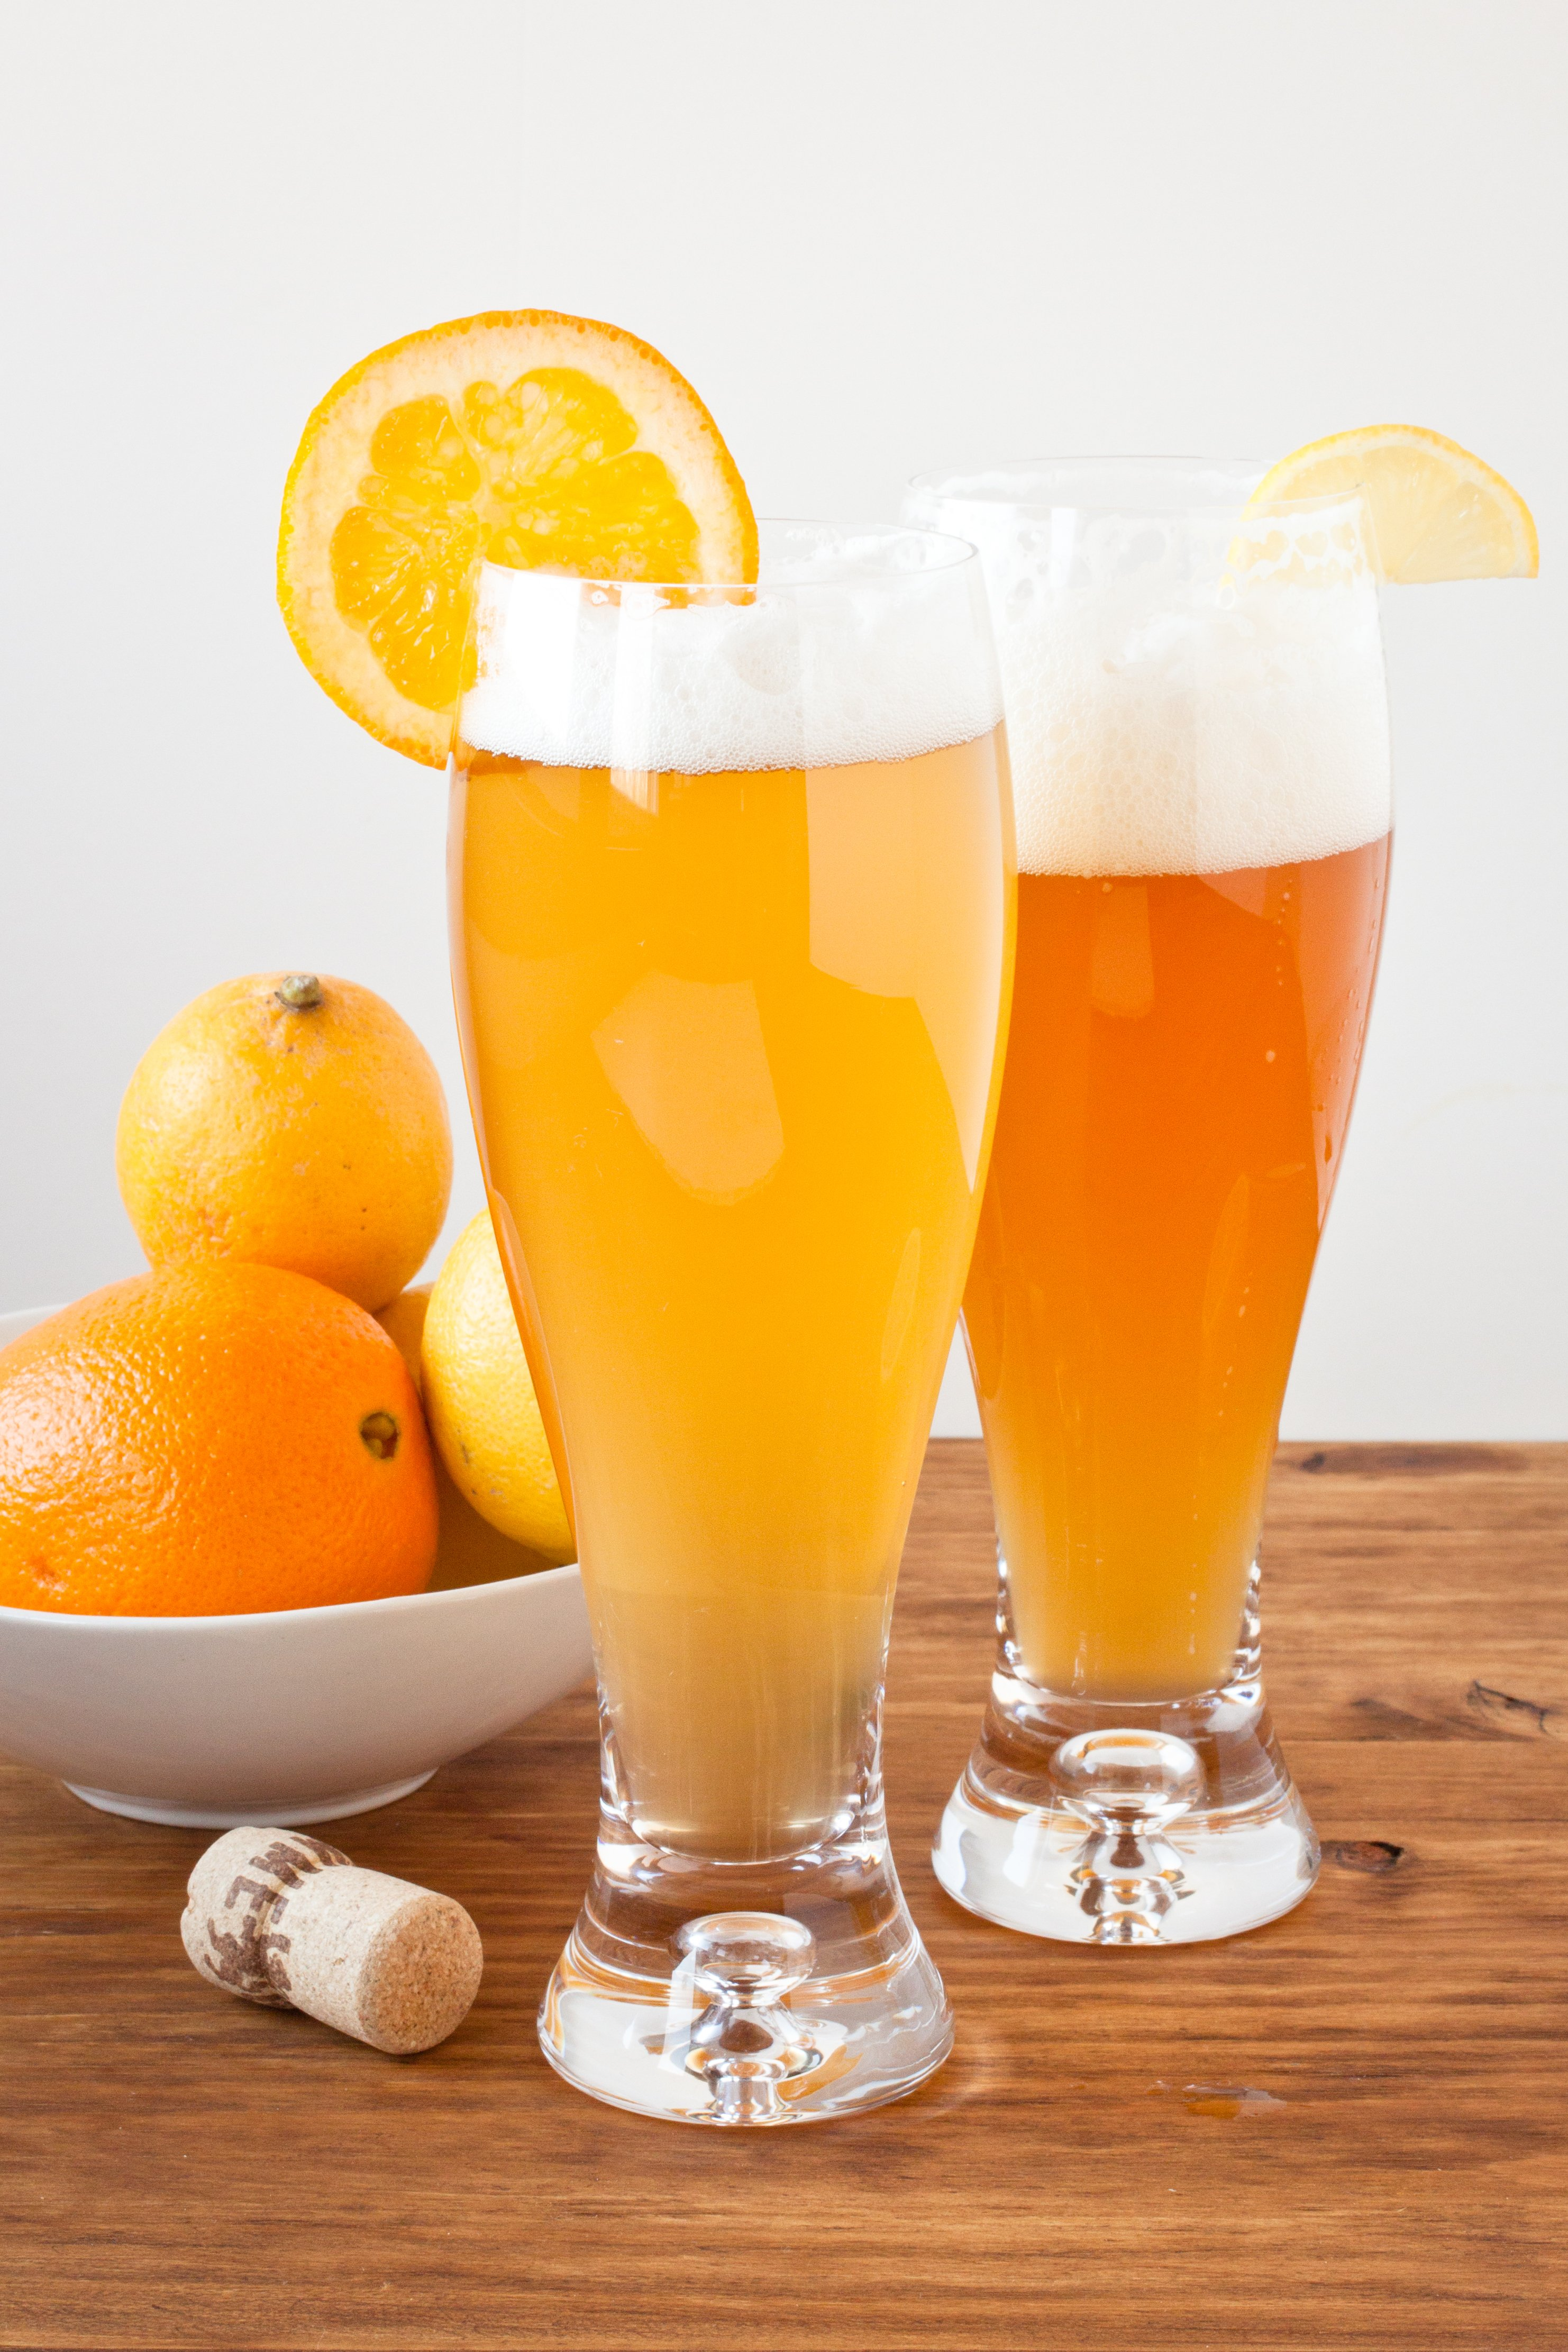 If You Like Blue Moon, You Should Try These 5 Beers Too | Kitchn